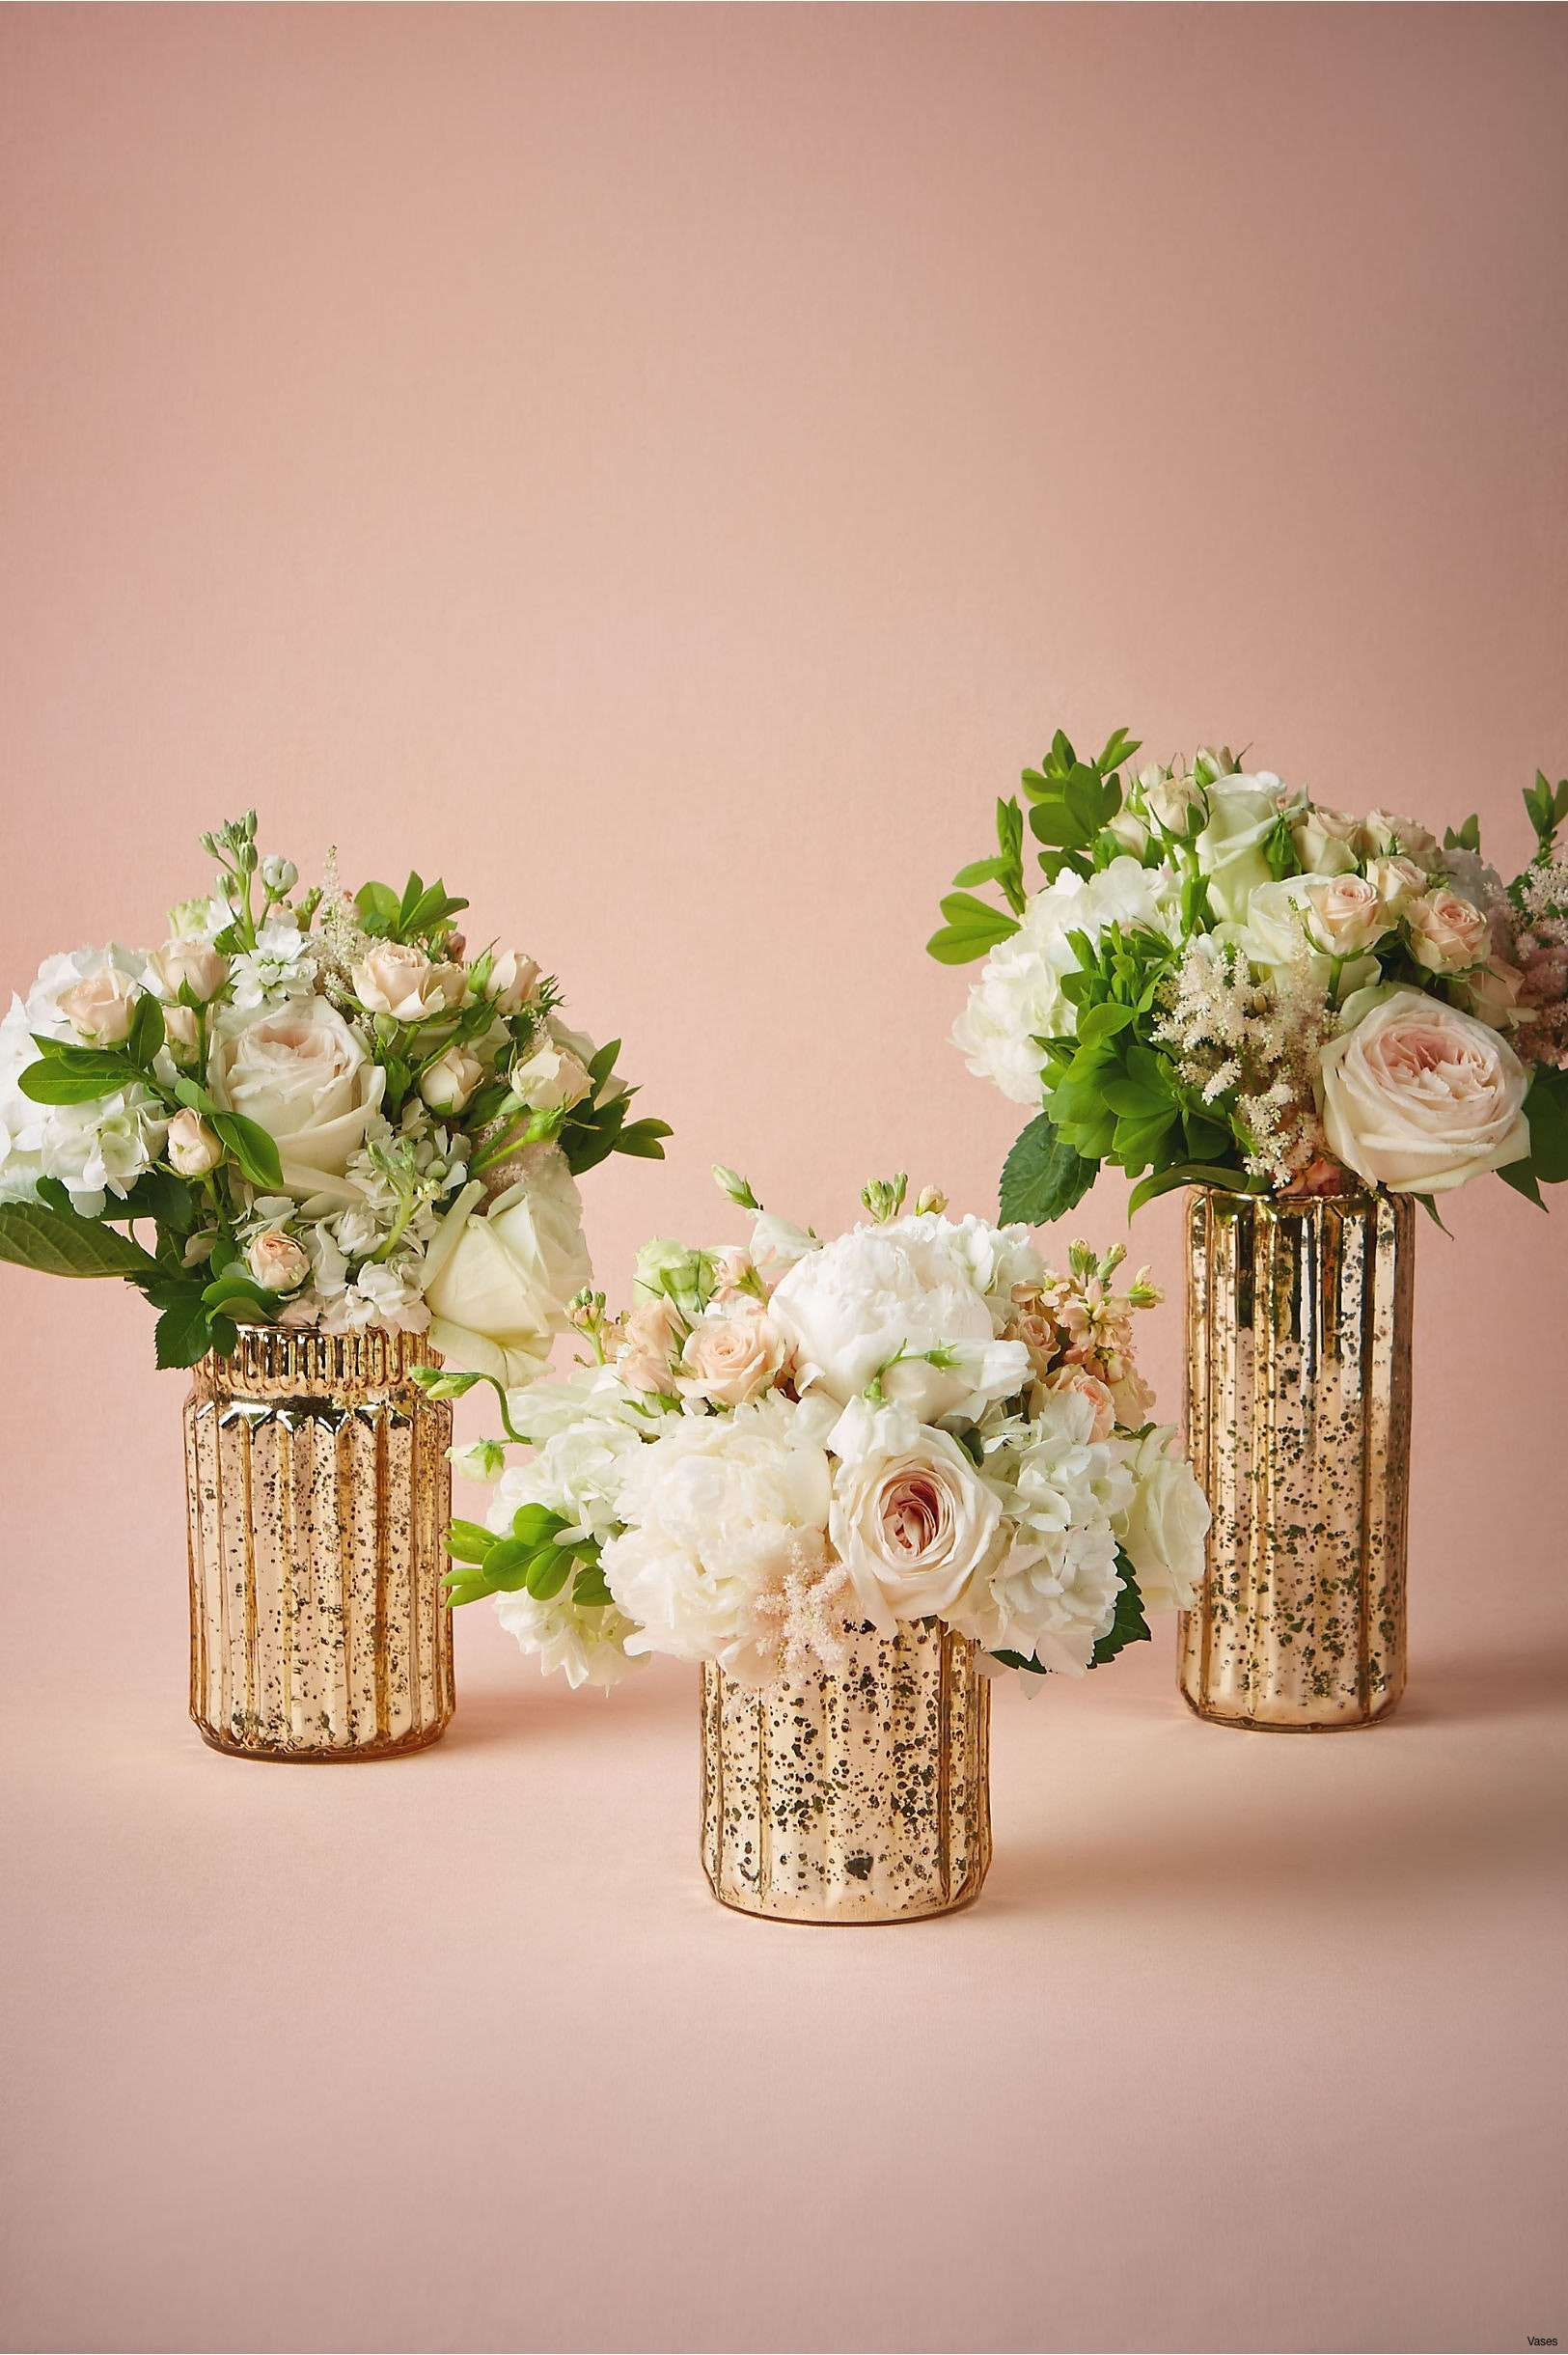 29 Spectacular Cube Vase Flower Arrangements 2021 free download cube vase flower arrangements of 47 vase centerpiece ideas the weekly world throughout 6625 1h vases mercury glass cylinder vasesi 0d australia design